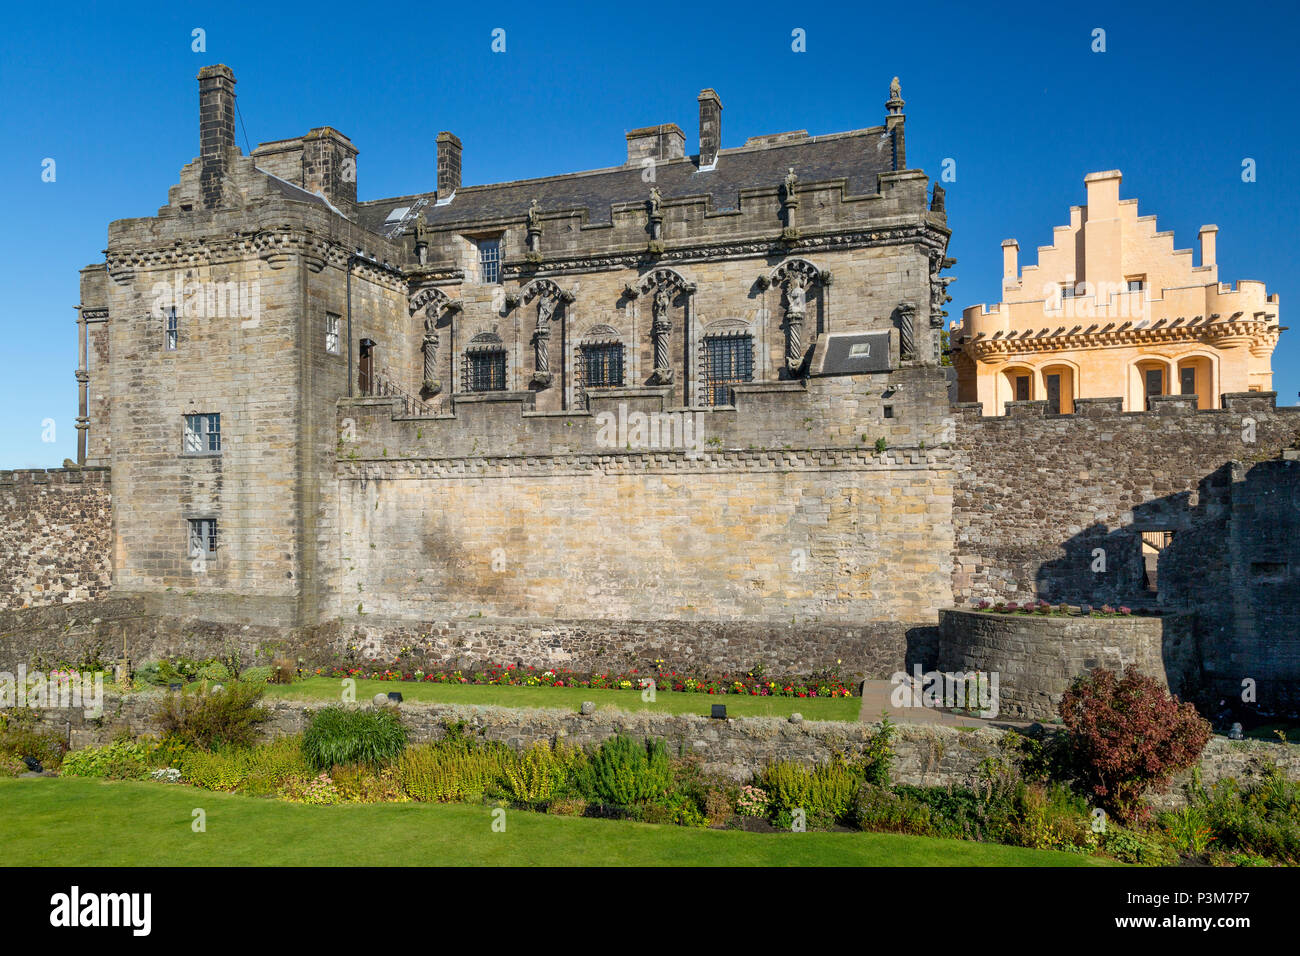 Birthplace of Mary Queen of Scots, Stirling Castle, Stirling, England. UK - Stock Image